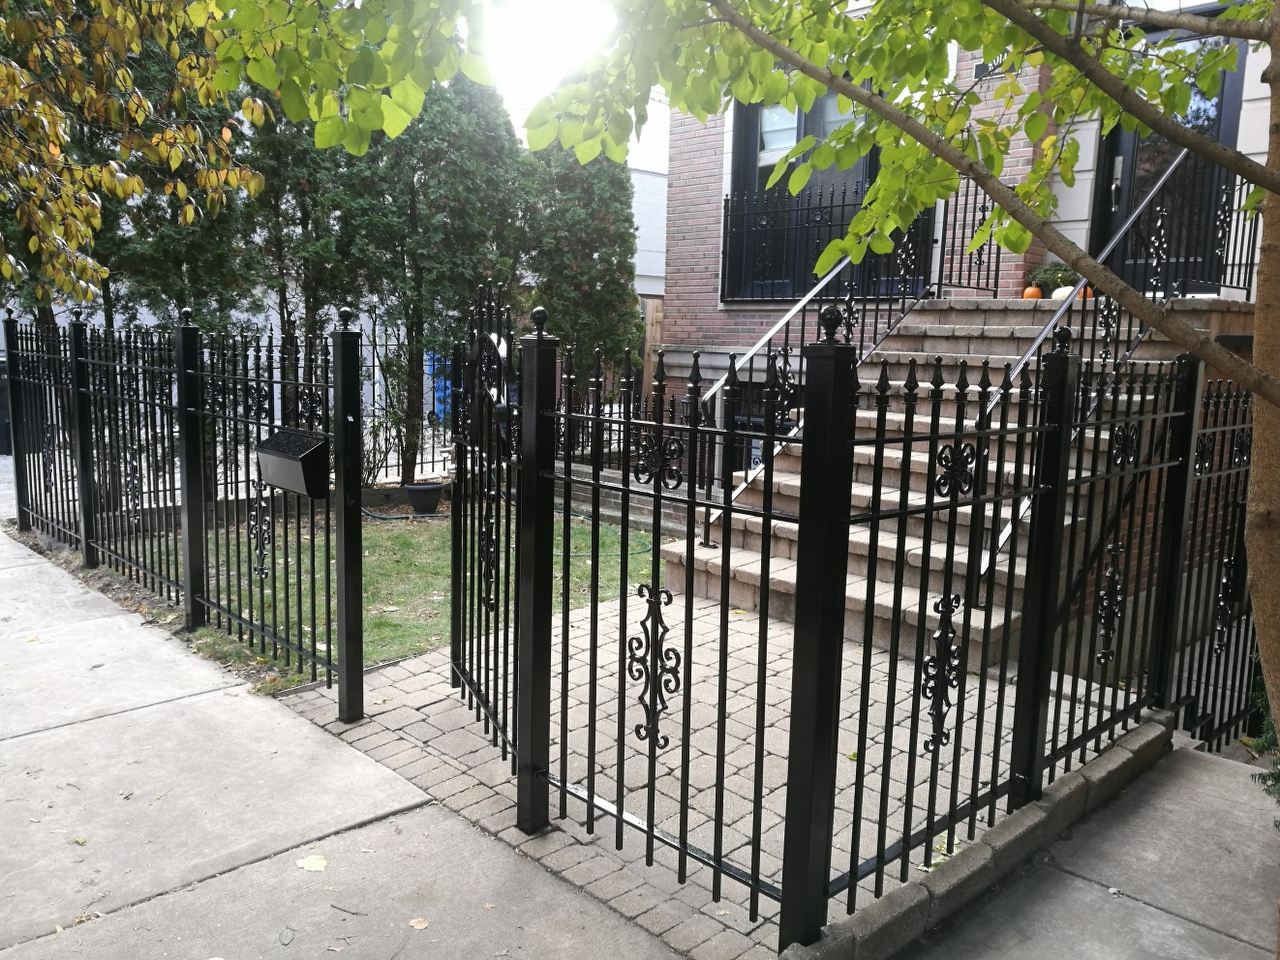 2017.10.30._Wicker_Par_railings_fence_stairs_rust_removal - Windy-Painters-.-Chicago-painter.-Wrought-iron-fence.-Railings.-Steps.-Rust-removal-and-refinishing.-Wicker-Park.-Bucktown-West-Town-11.jpg